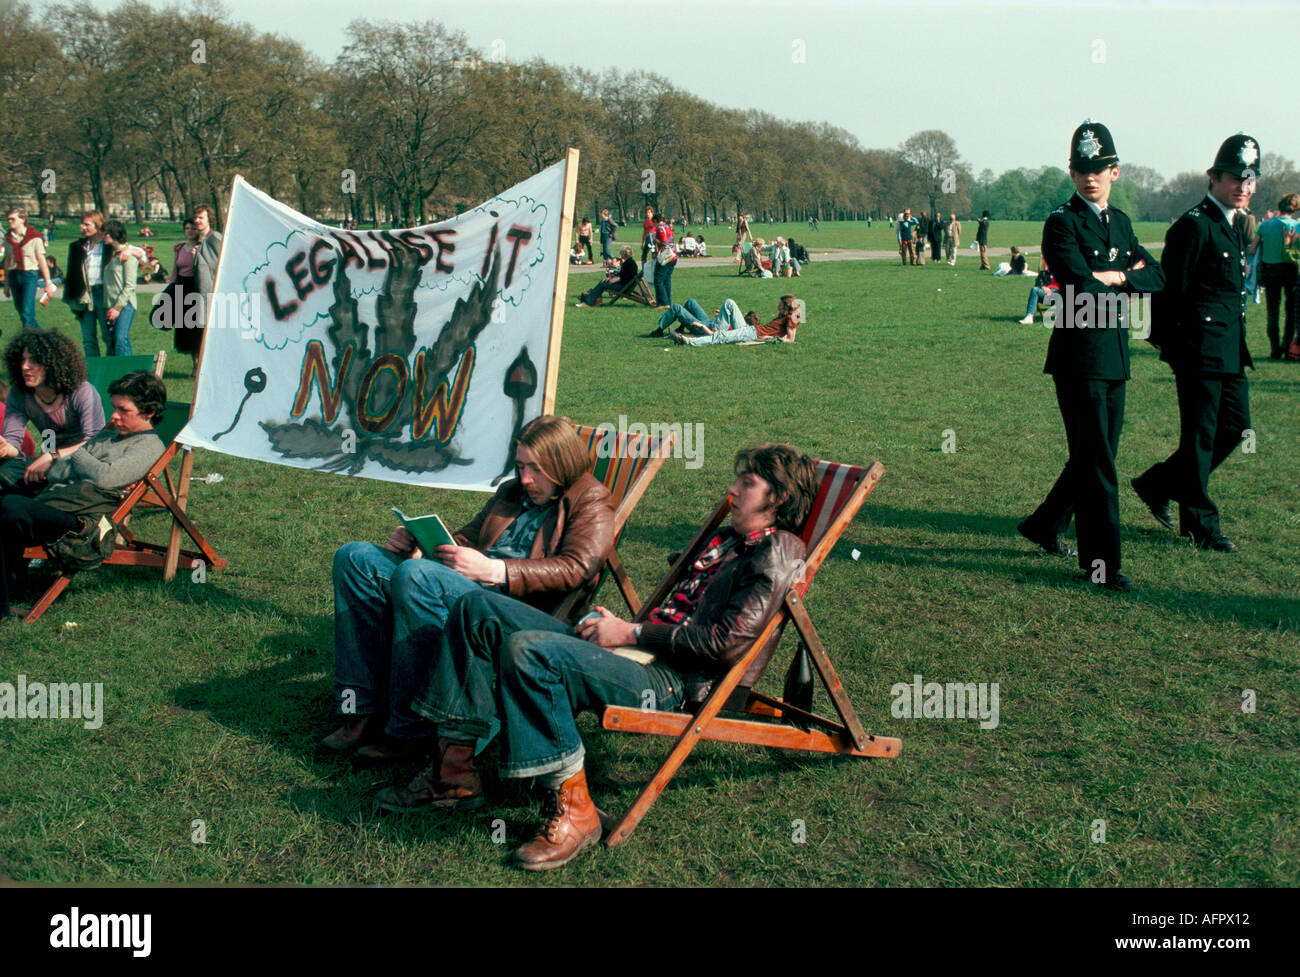 POLICE AND PROTESTERS WITH LARGE BANNER PRONOUNCING LEGALISE IT NOW AT LEGALISE POT DEMO HYDE PARK LONDON 1979 HOMER SYKES - Stock Image